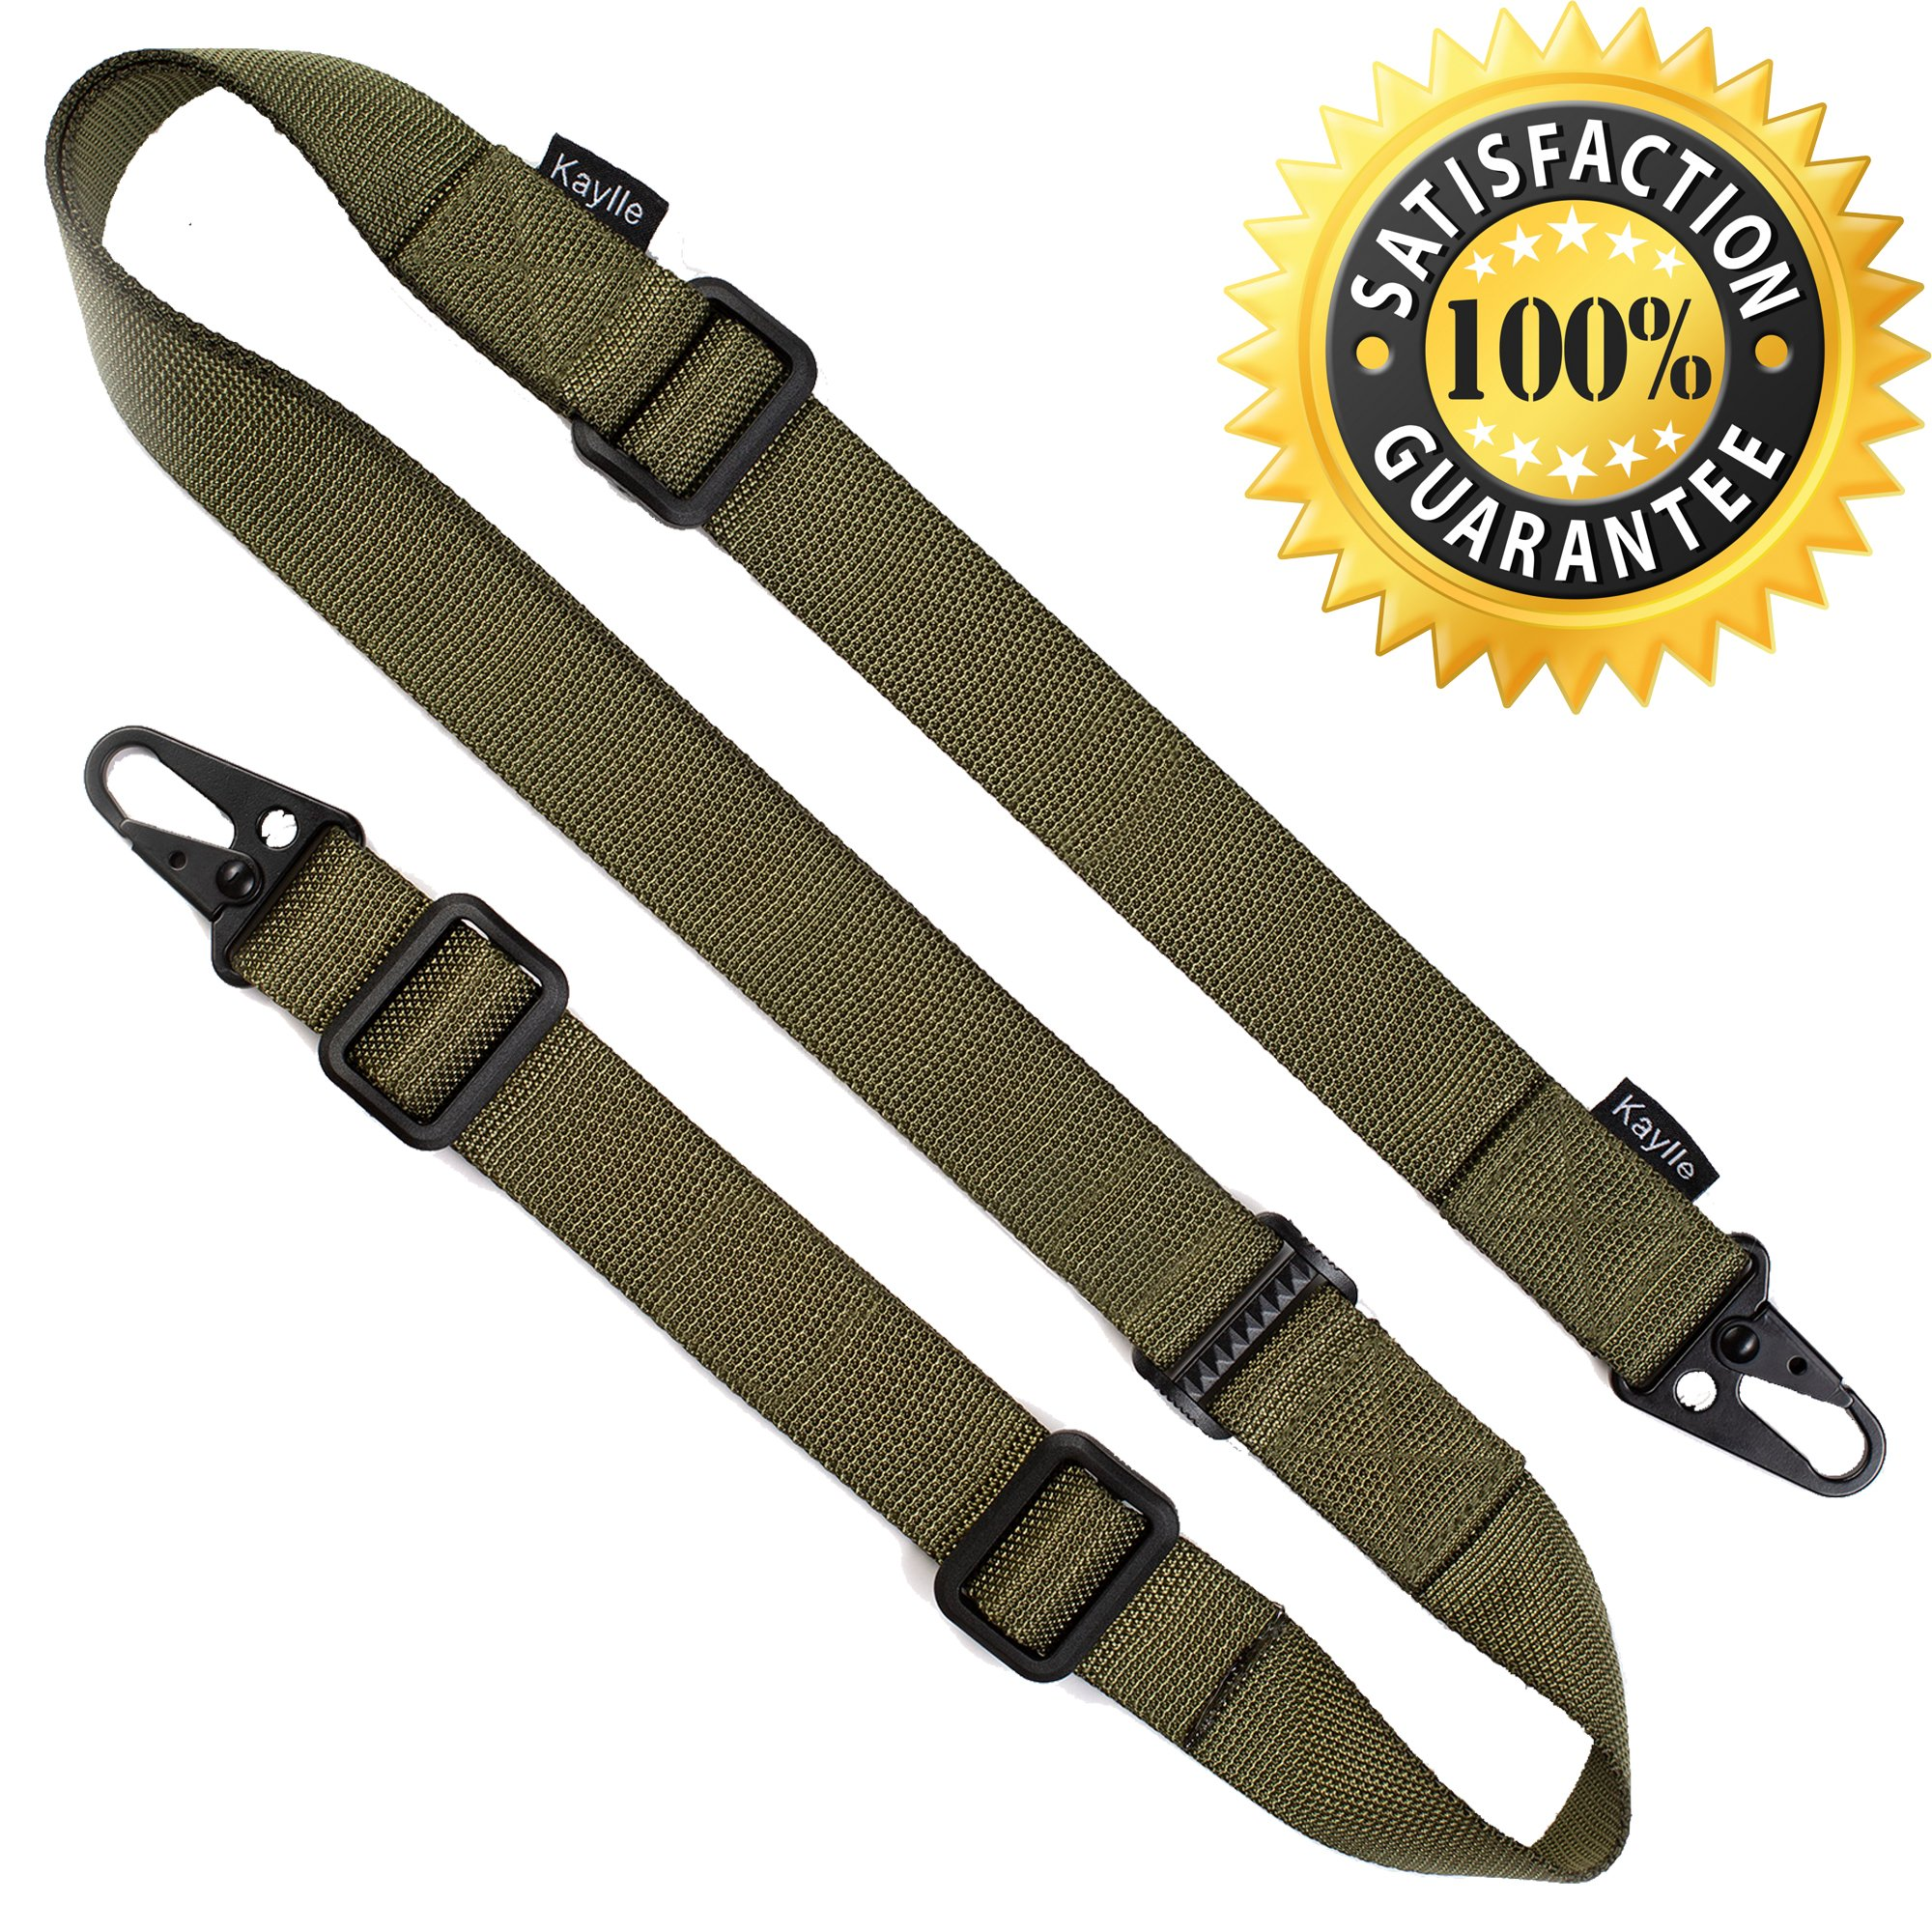 KAYLLE 2-Point Rifle Sling - Premium Shotgun Sling with Upgraded Metal Hook Fits Any Weapon - Durable & Quick Length Adjust - Multi Use for Tactical, Hunting, Sniper, Shooting (ArmyGreen)